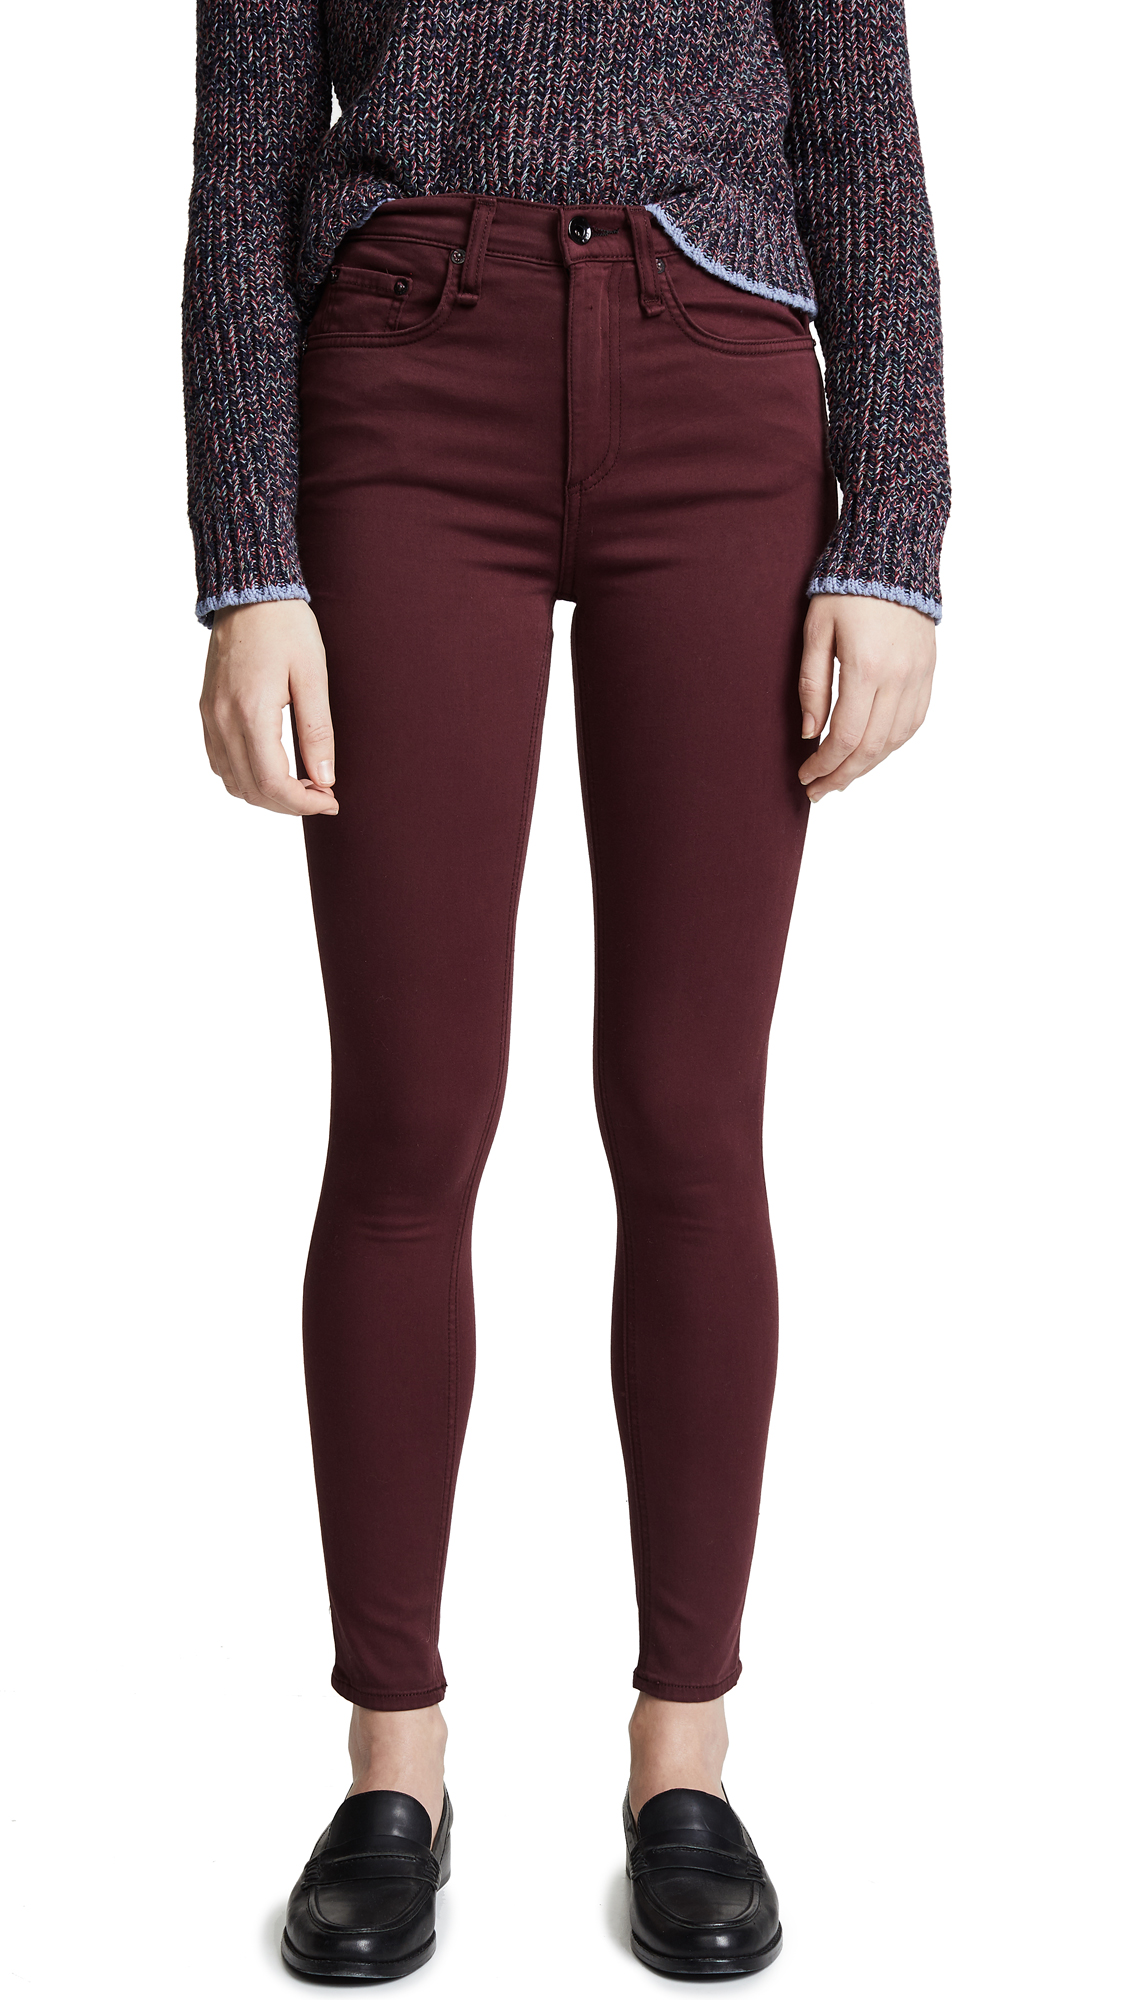 Rag & Bone/JEAN The Plush High Rise Ankle Skinny Jeans